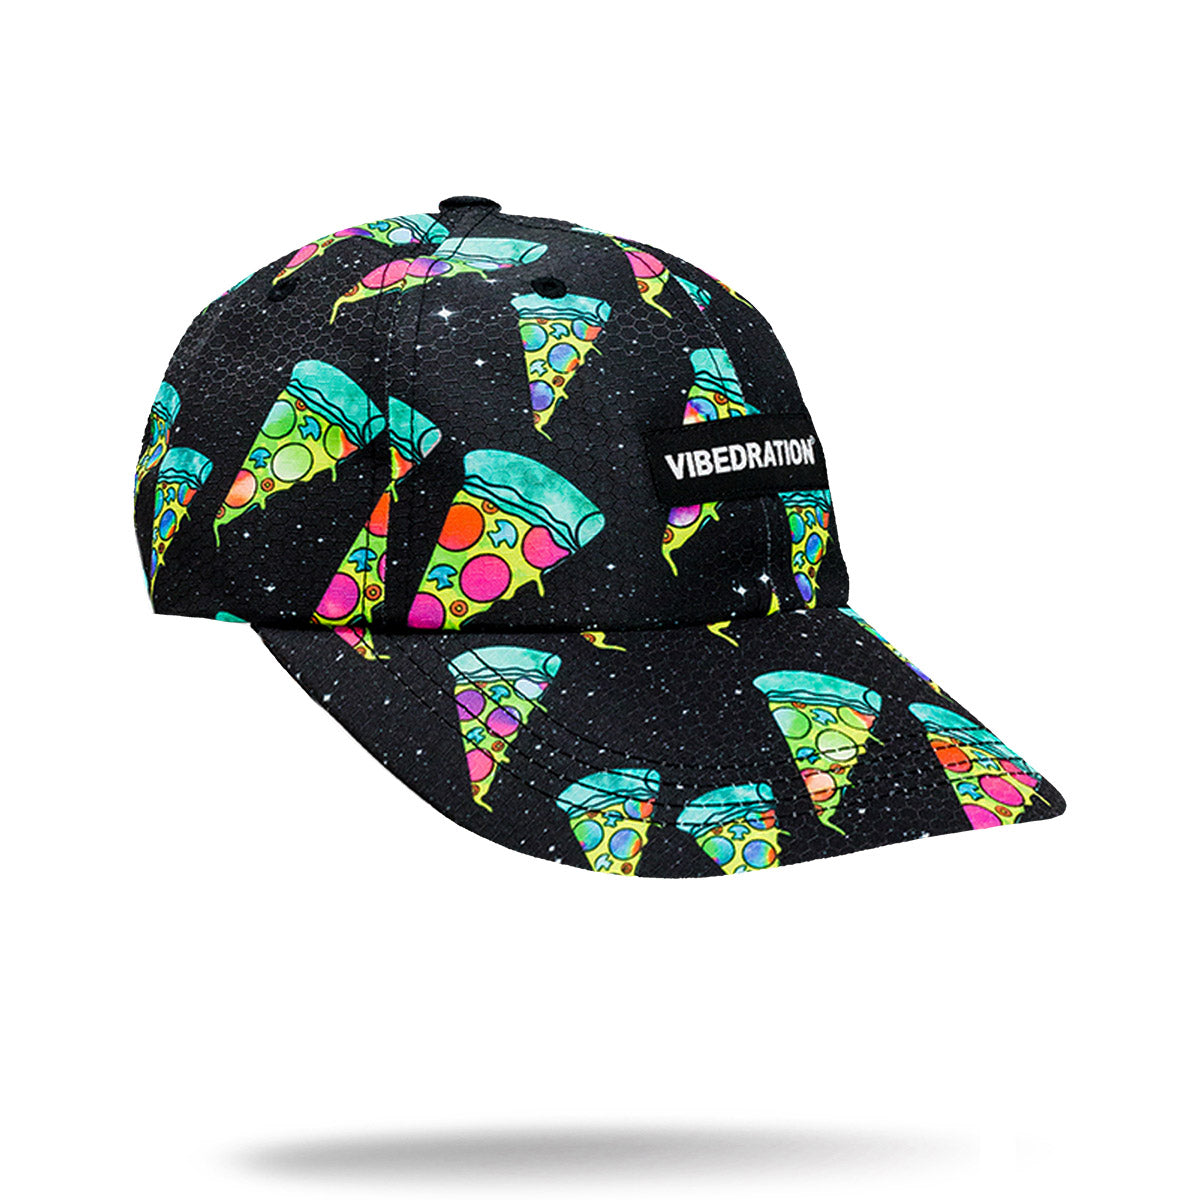 Black printed hat with green pizza